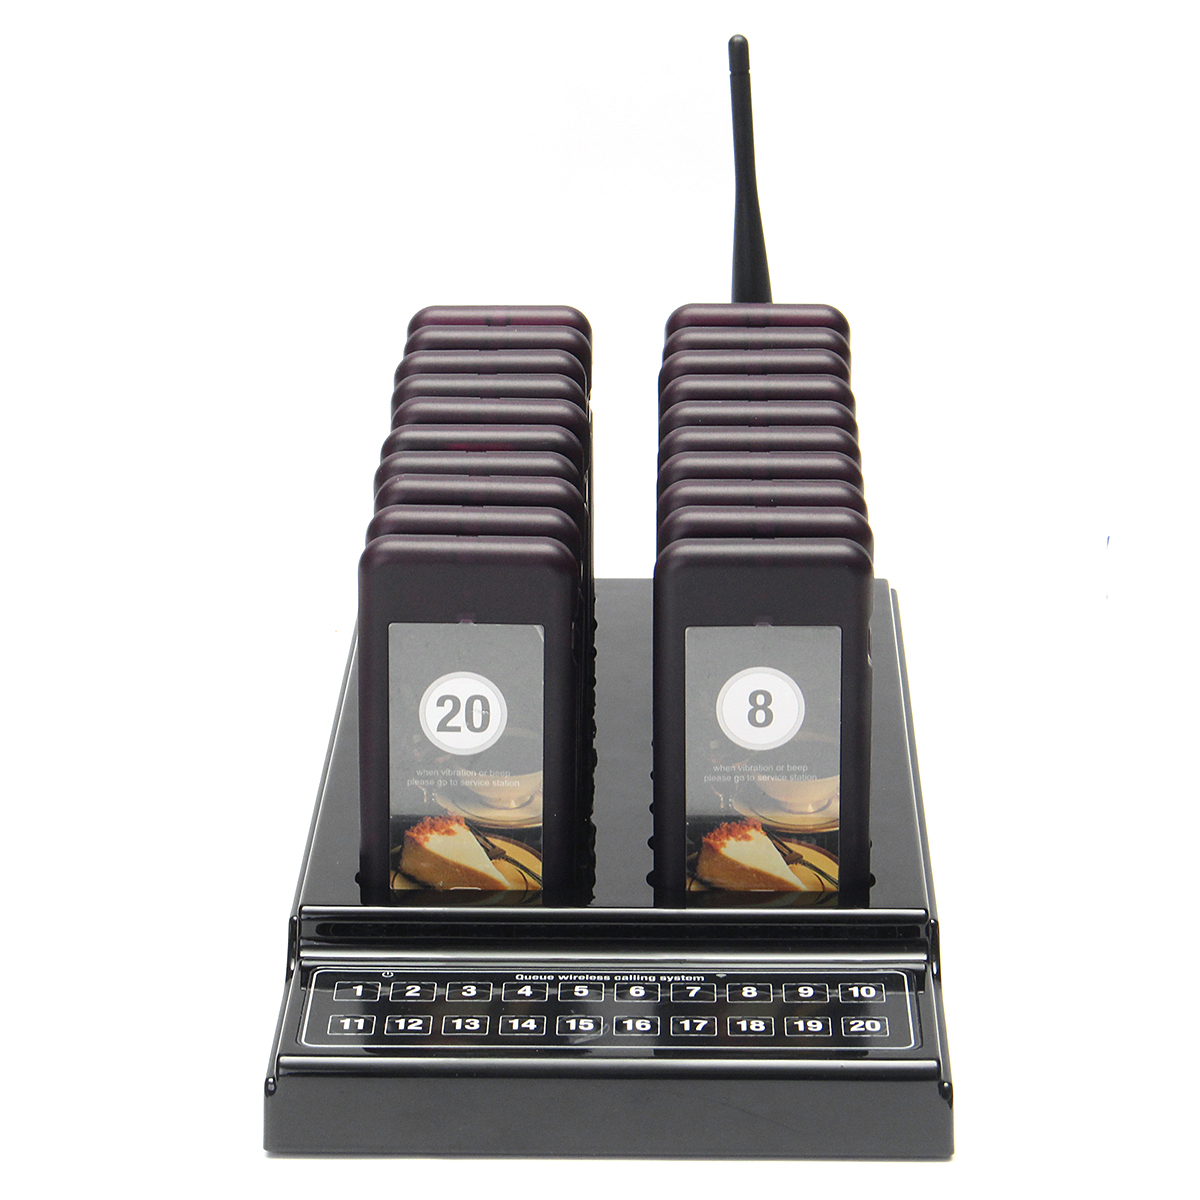 DC 5V Restaurant Wireless Guest Paging Queuing System 1 Transmitter 20 Chargeable Pagers